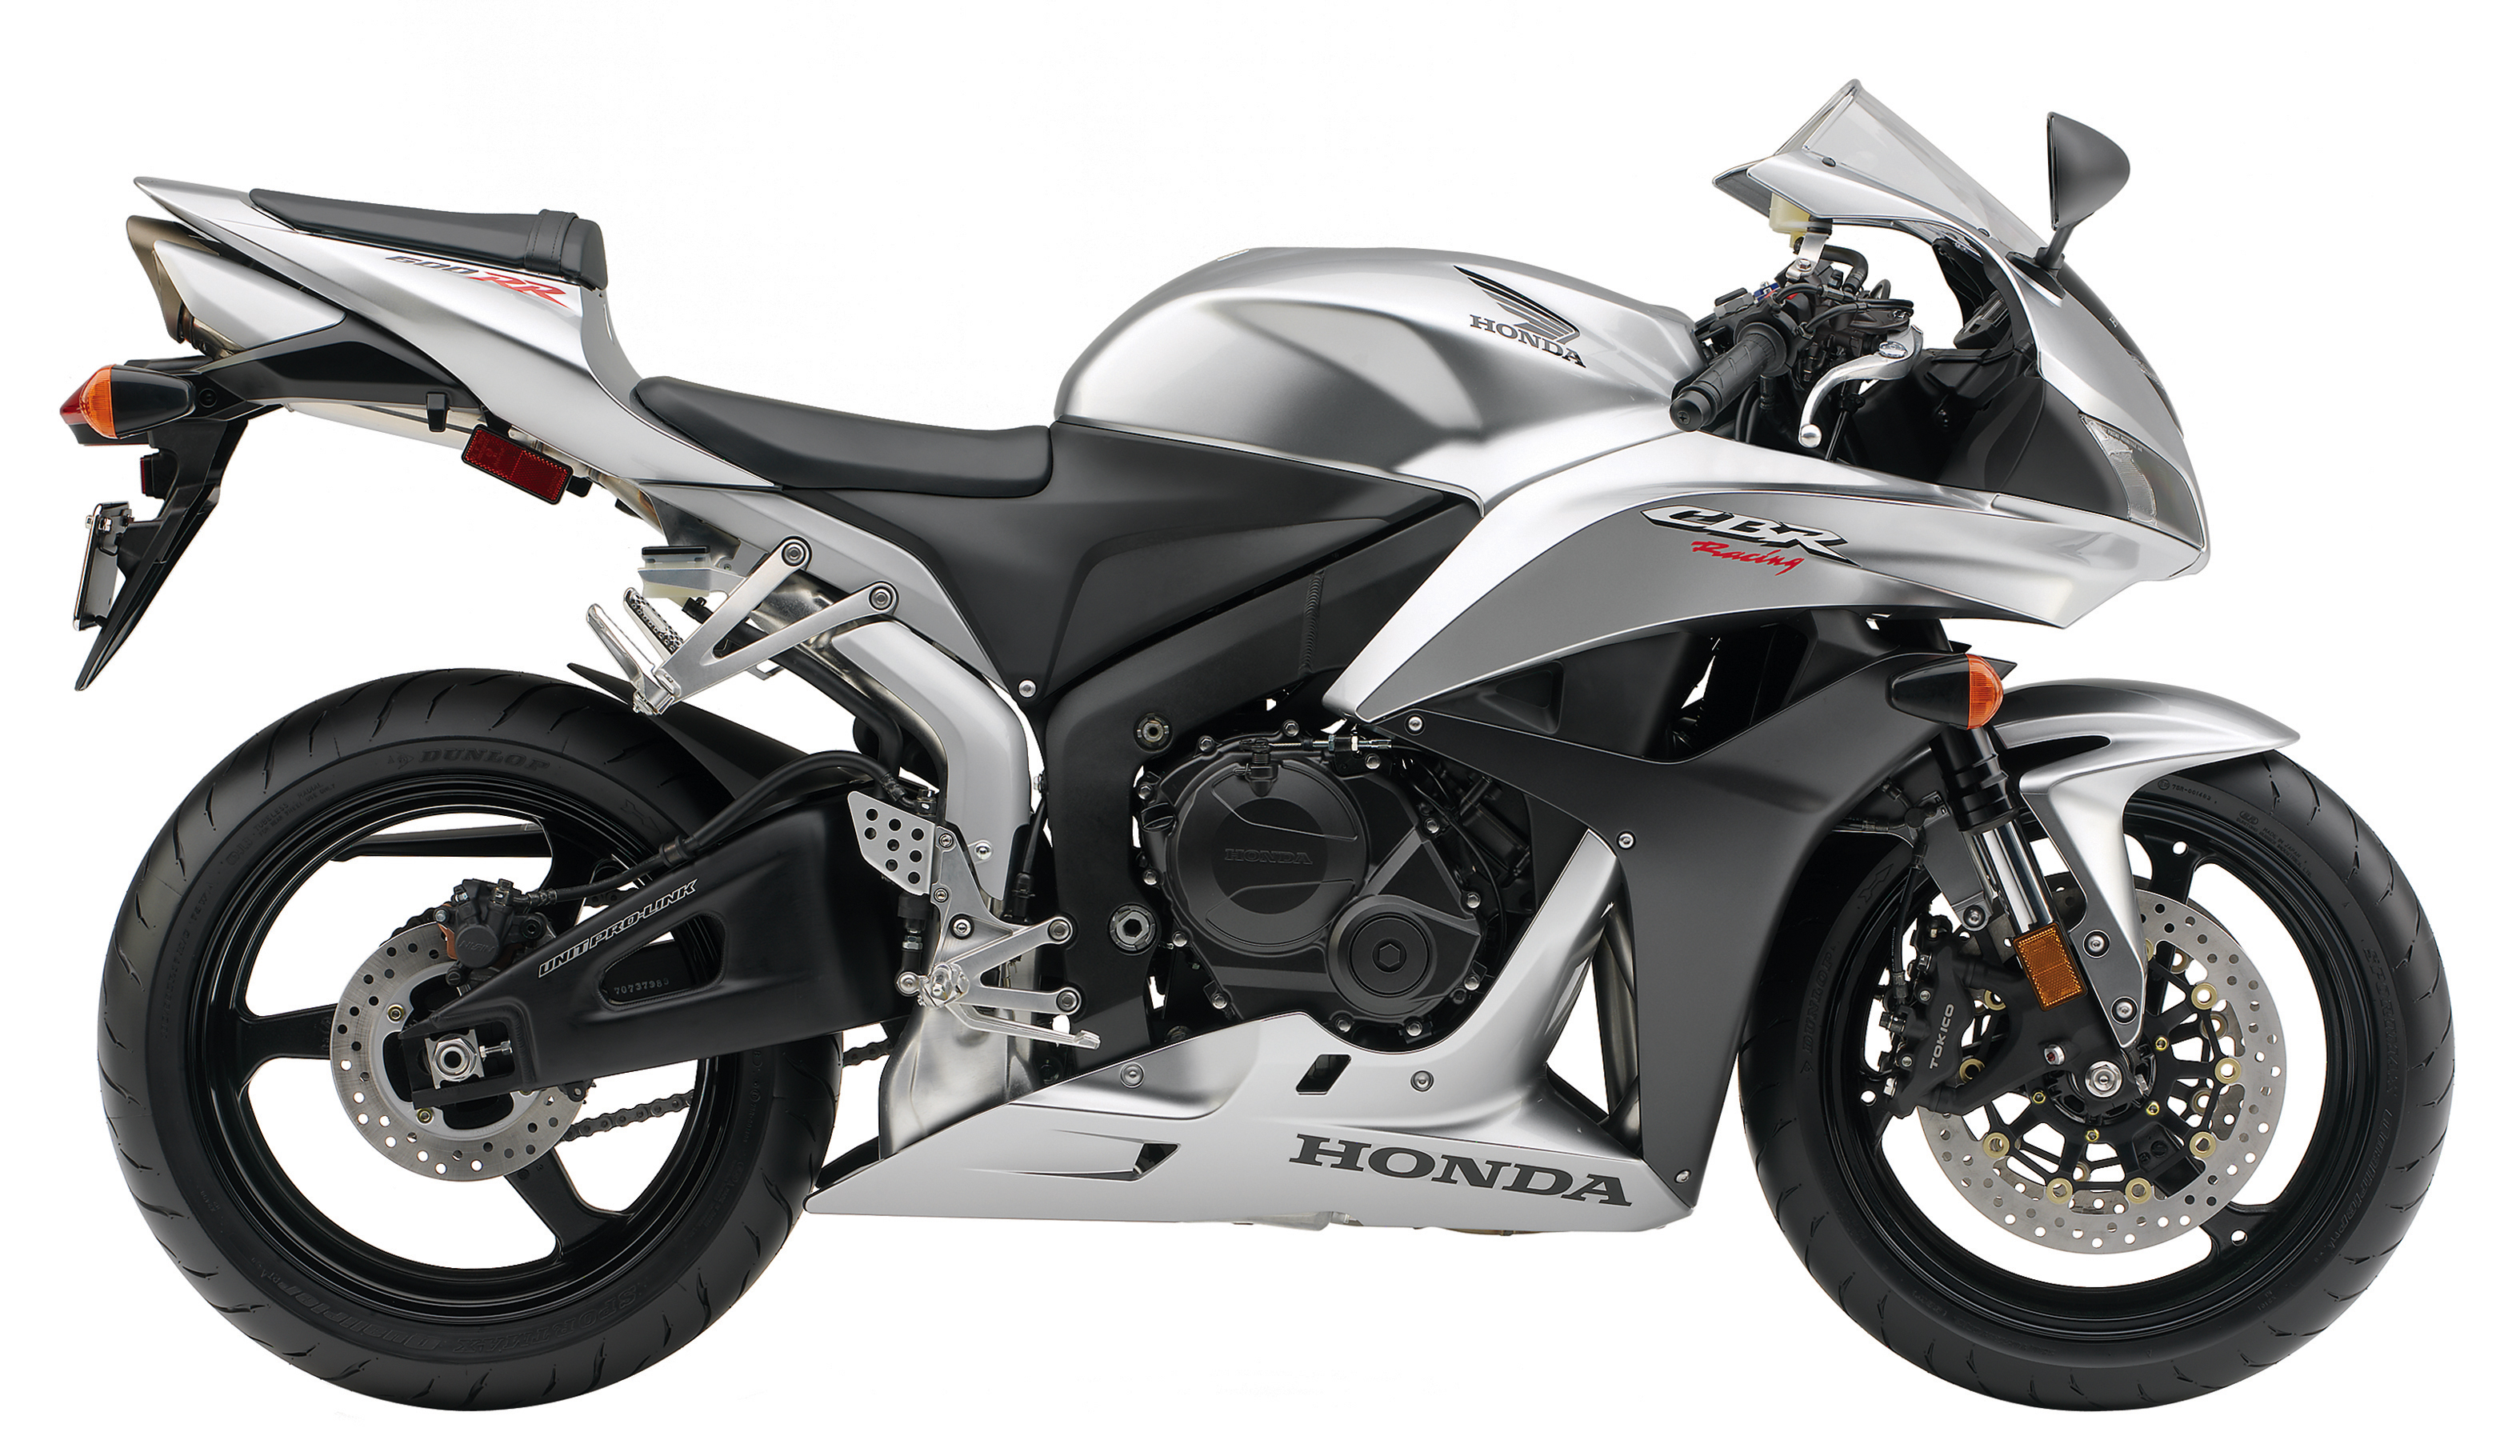 2008 - 9 Honda CBR600RR | Top Speed